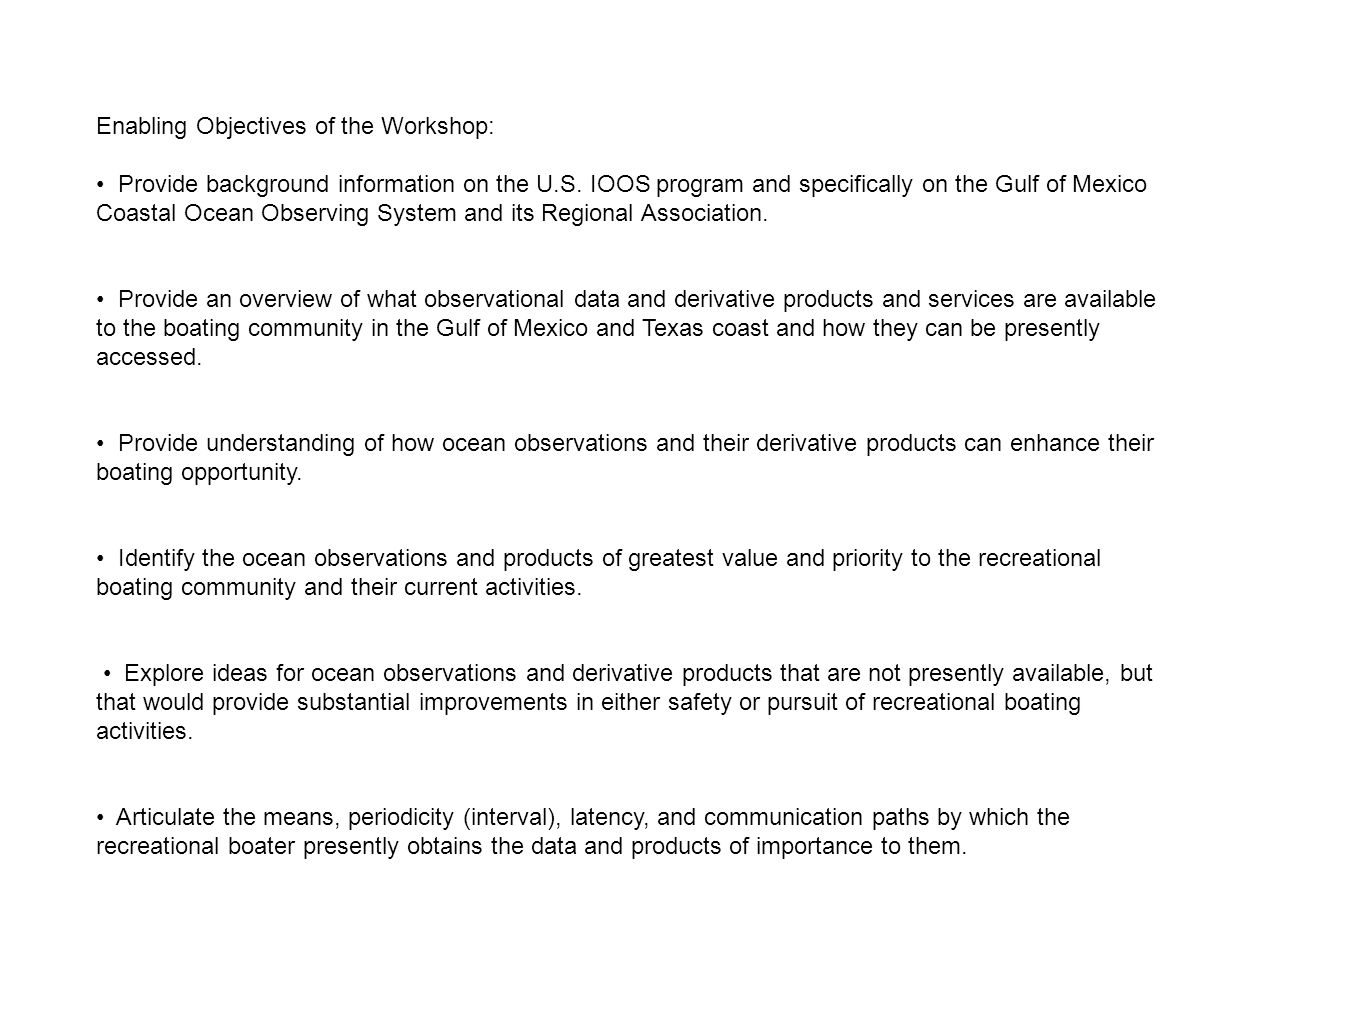 Background information on mexico - Enabling Objectives Of The Workshop Provide Background Information On The U S